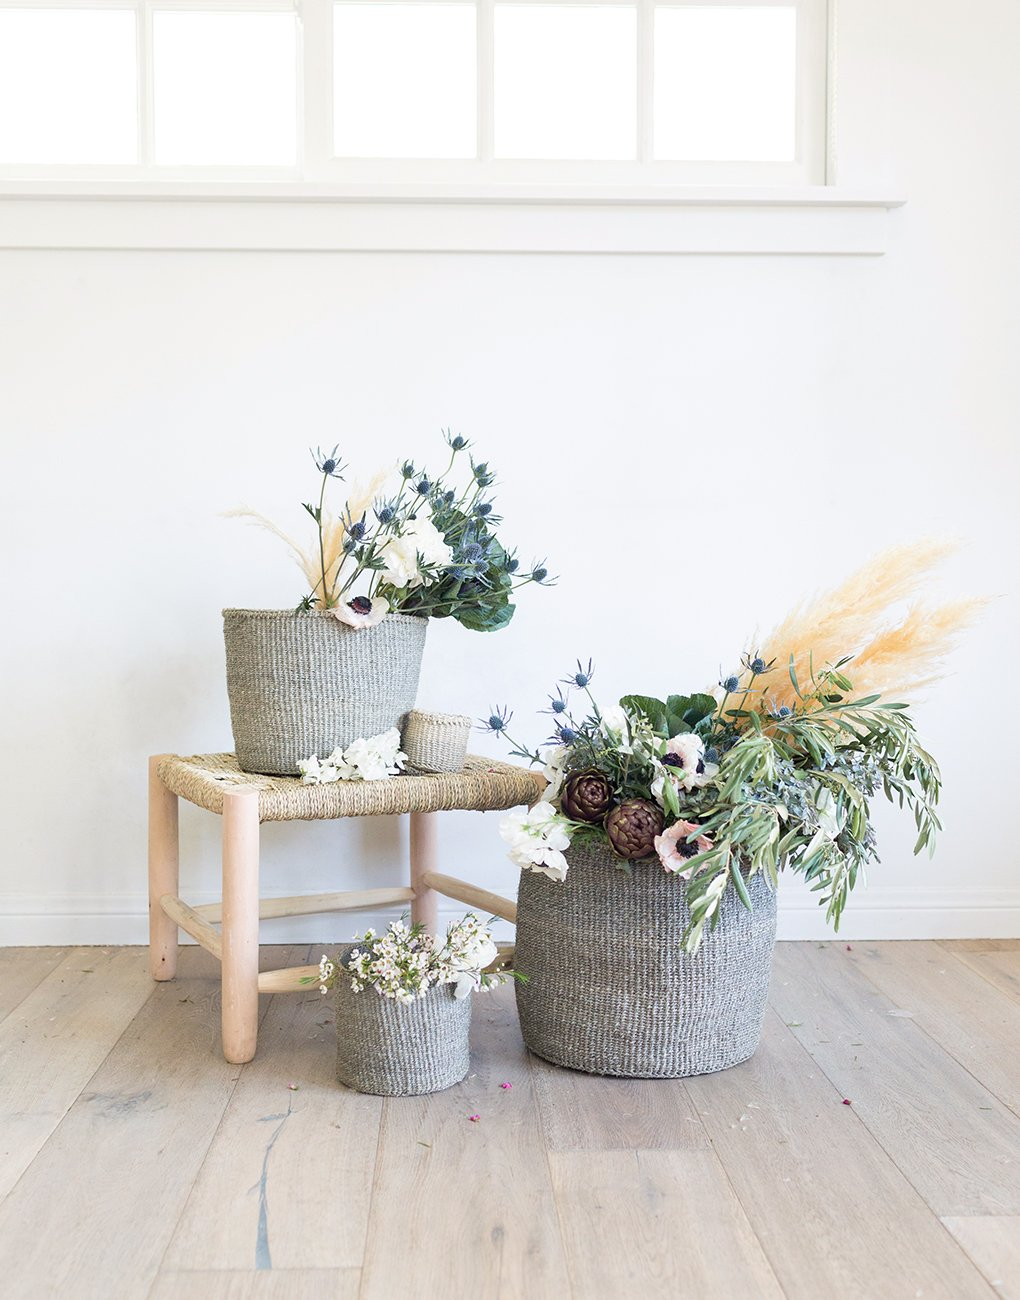 Solid Sisal Basket - Gray | The Little Market